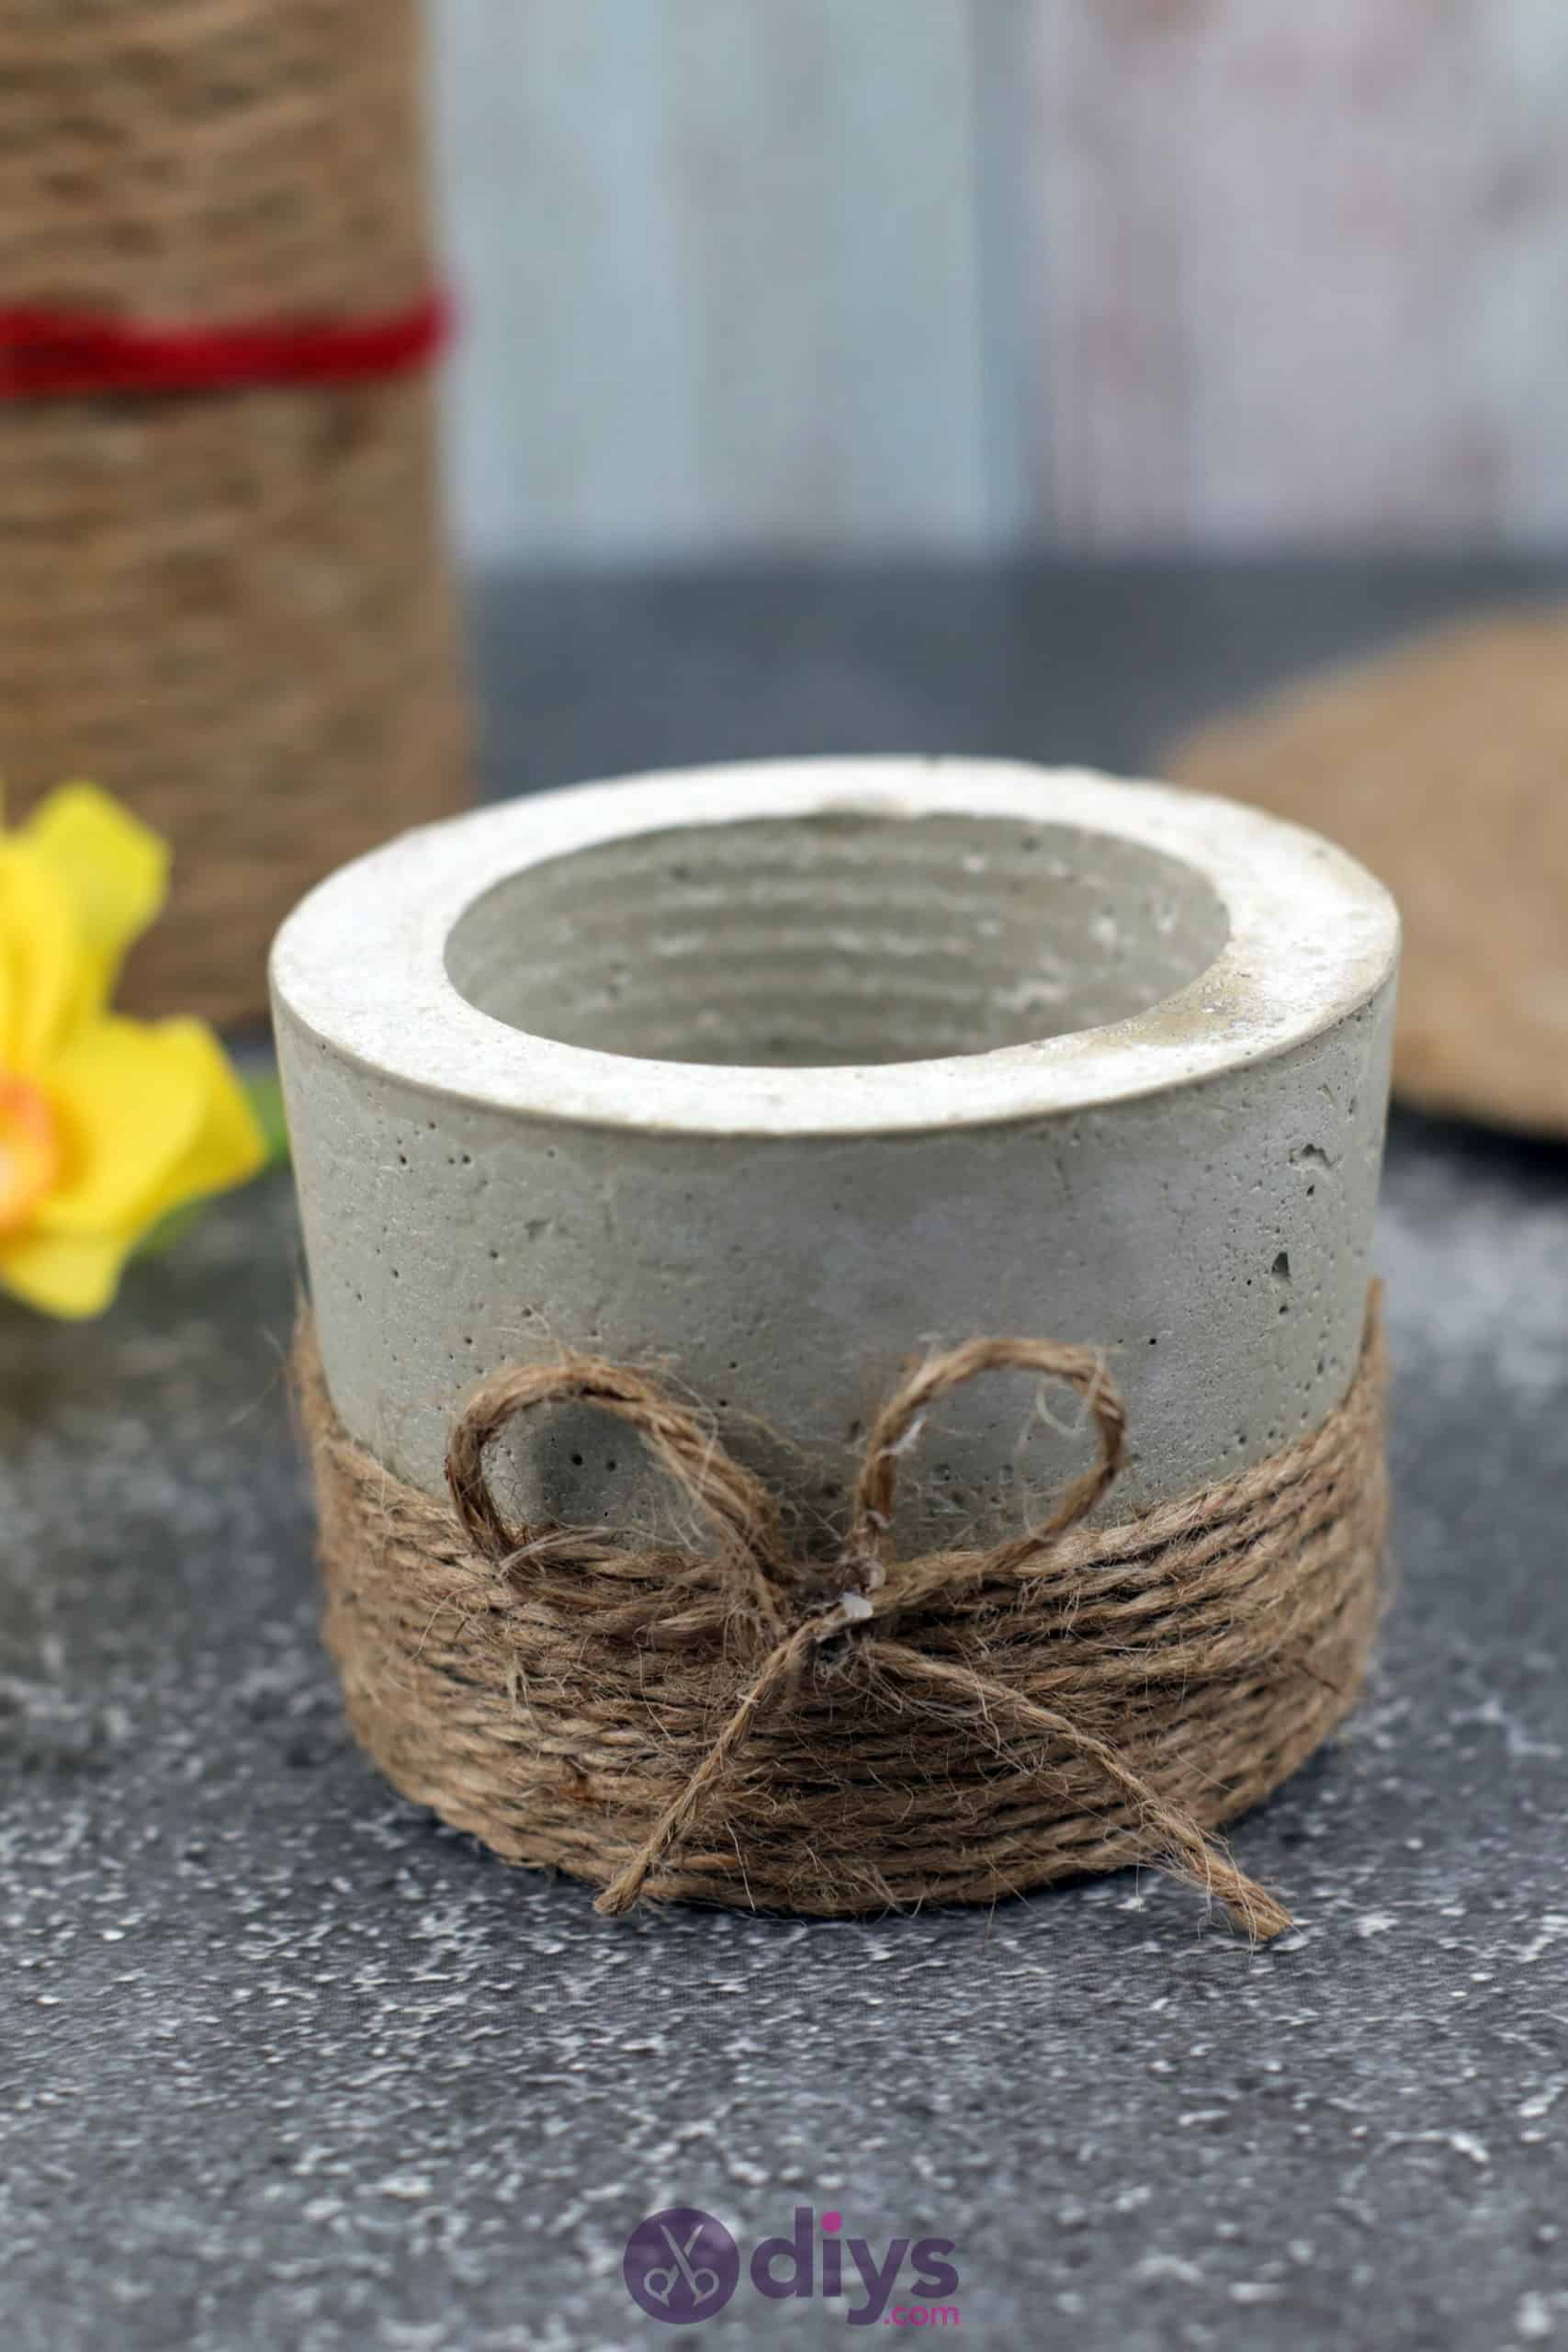 Diy small concrete planter jute